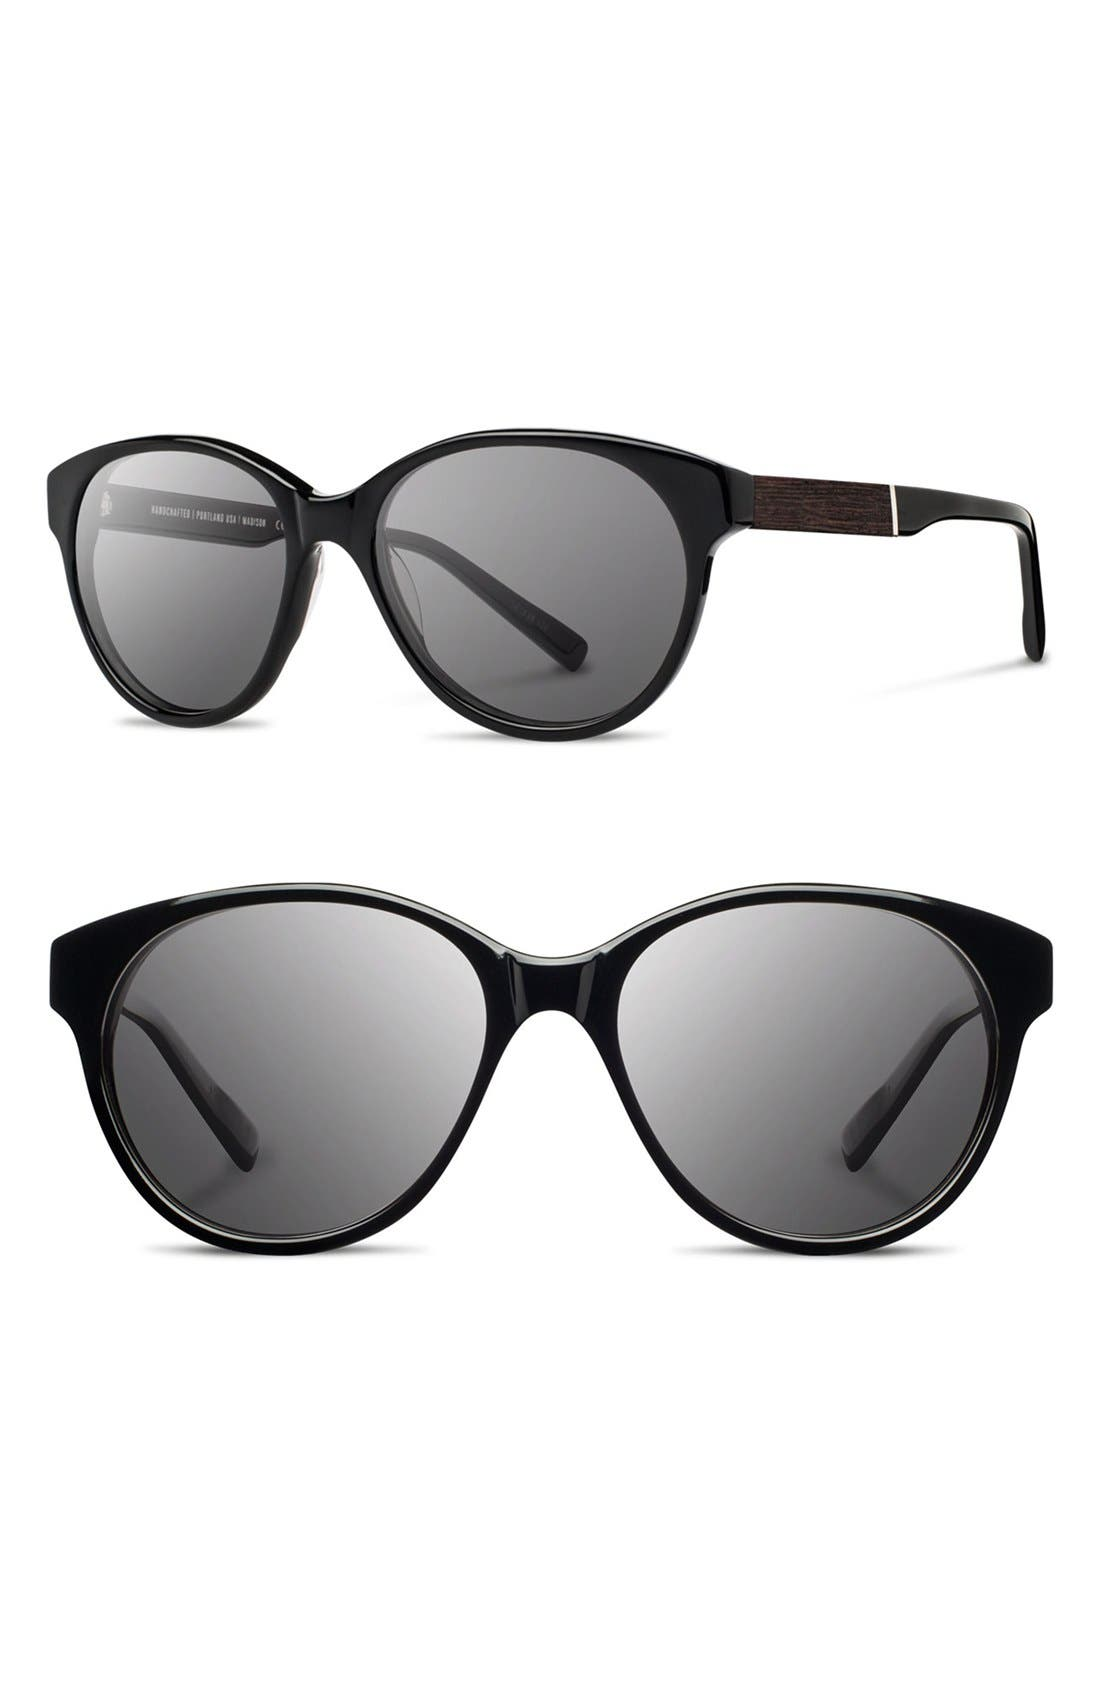 SHWOOD Madison 54mm Round Sunglasses